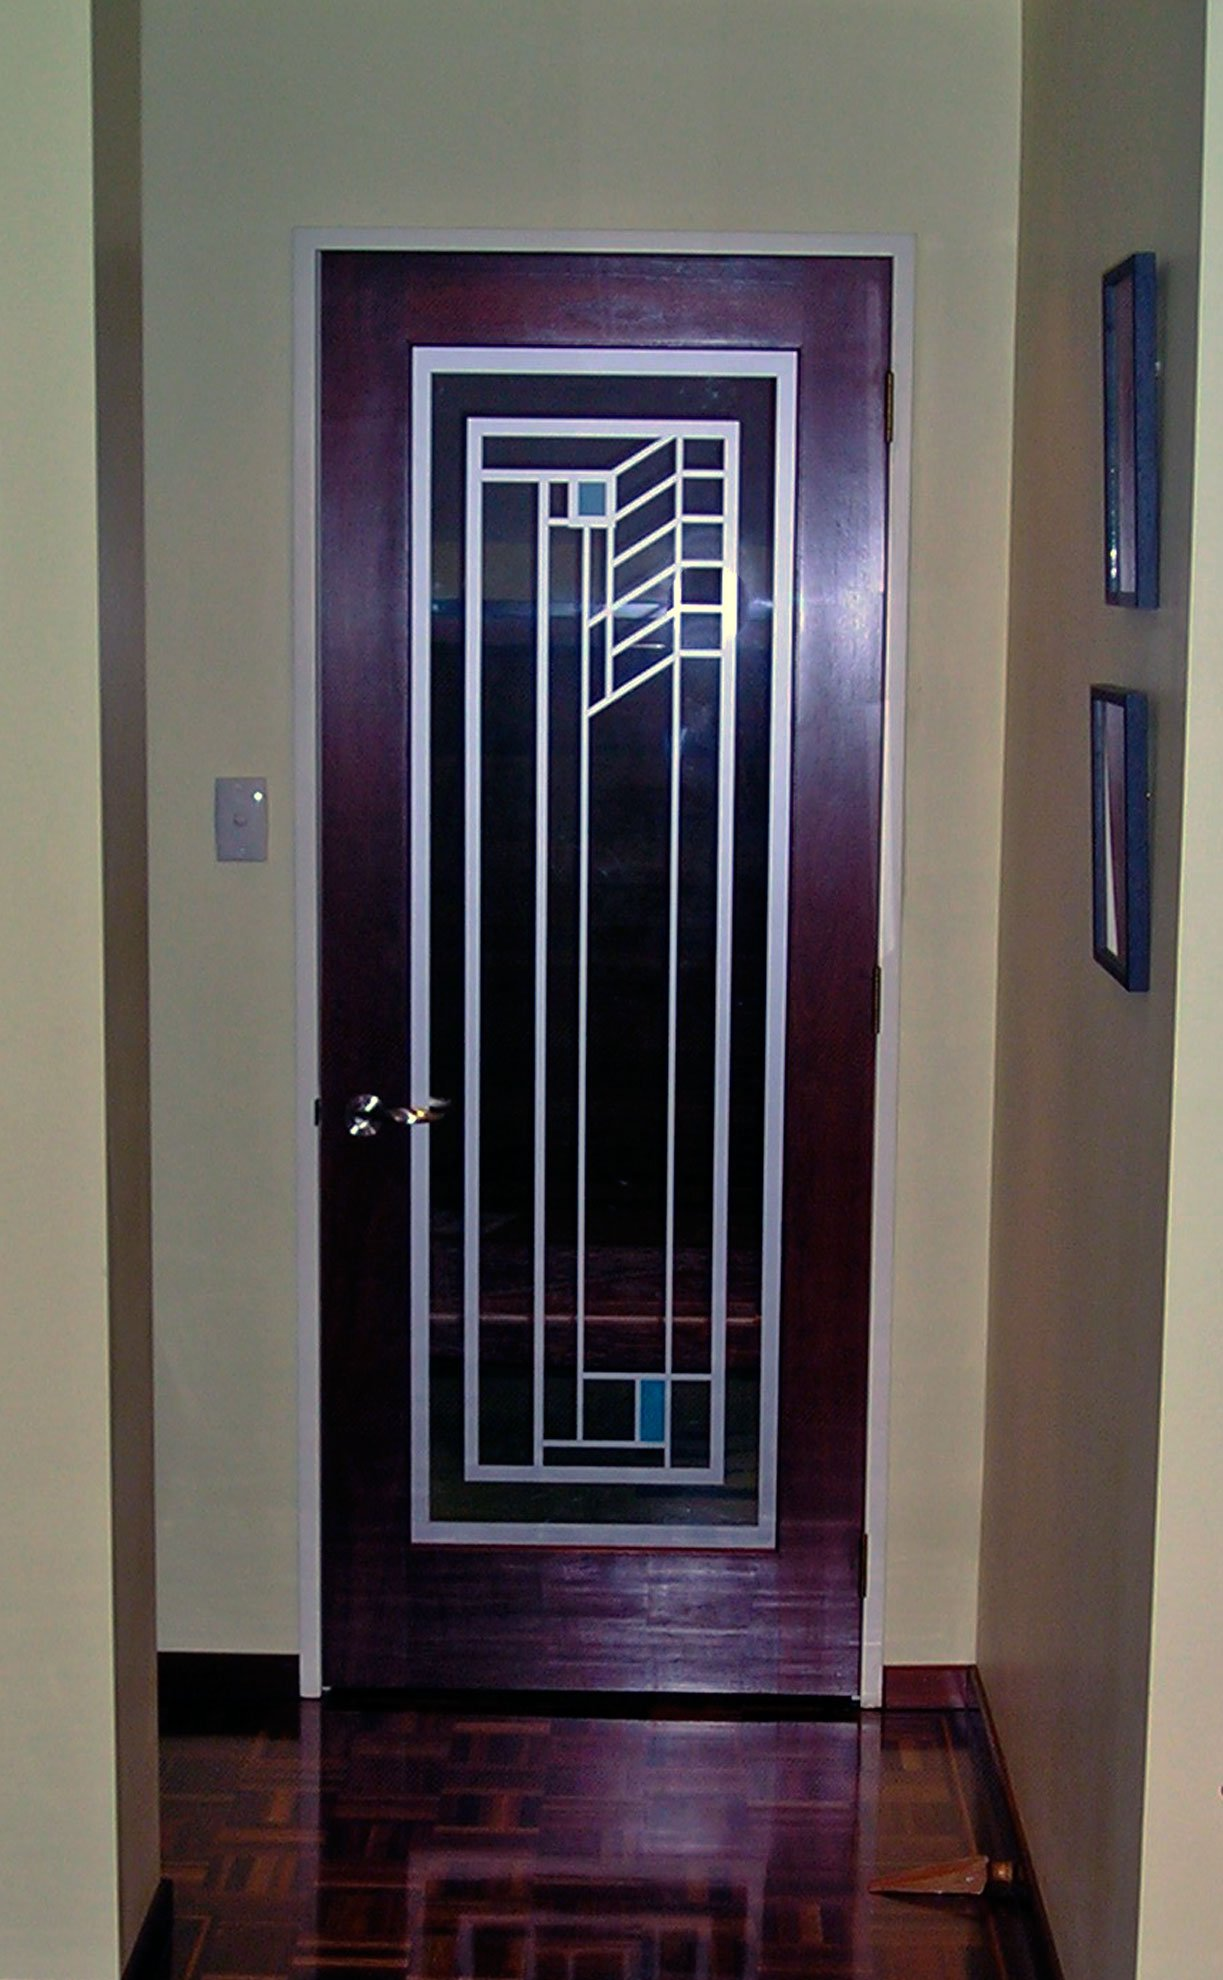 Window etch film with graphic design applied to home entrance door